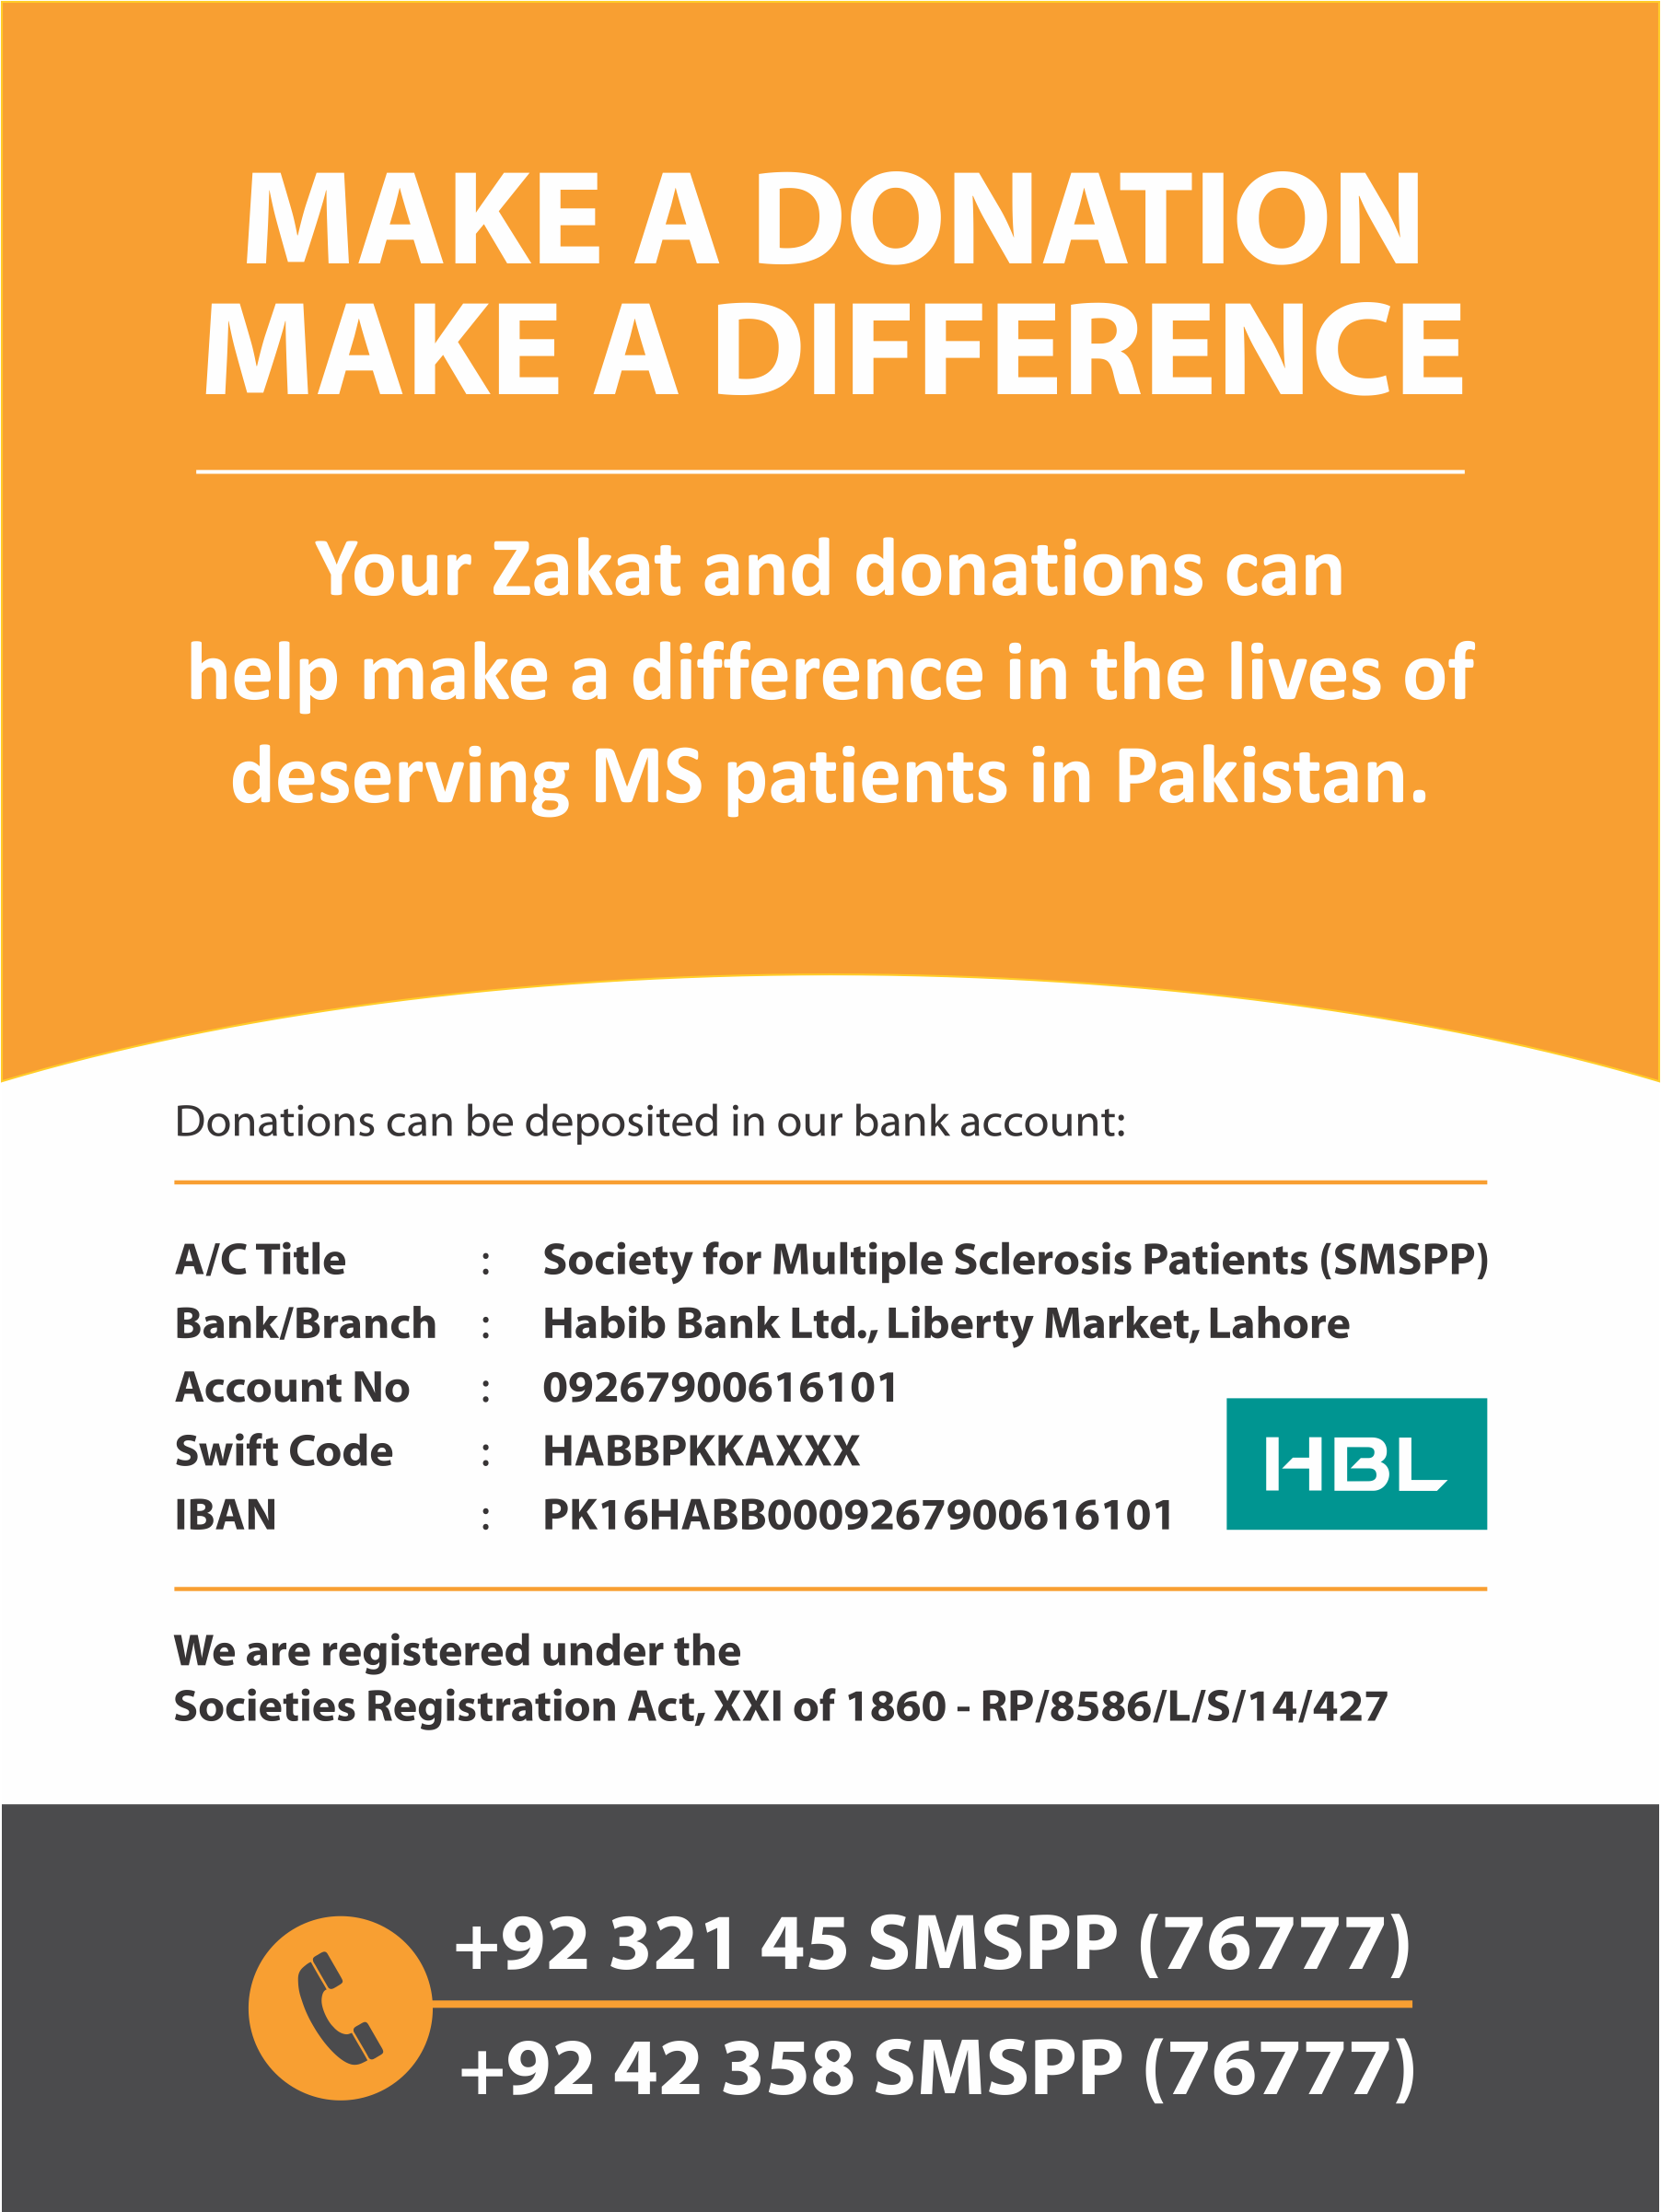 Make A Donation Make A Difference Donate To The Society For Multiple Sclerosis Patients In Pakistan Multiple Sclerosis Make A Donation This Or That Questions